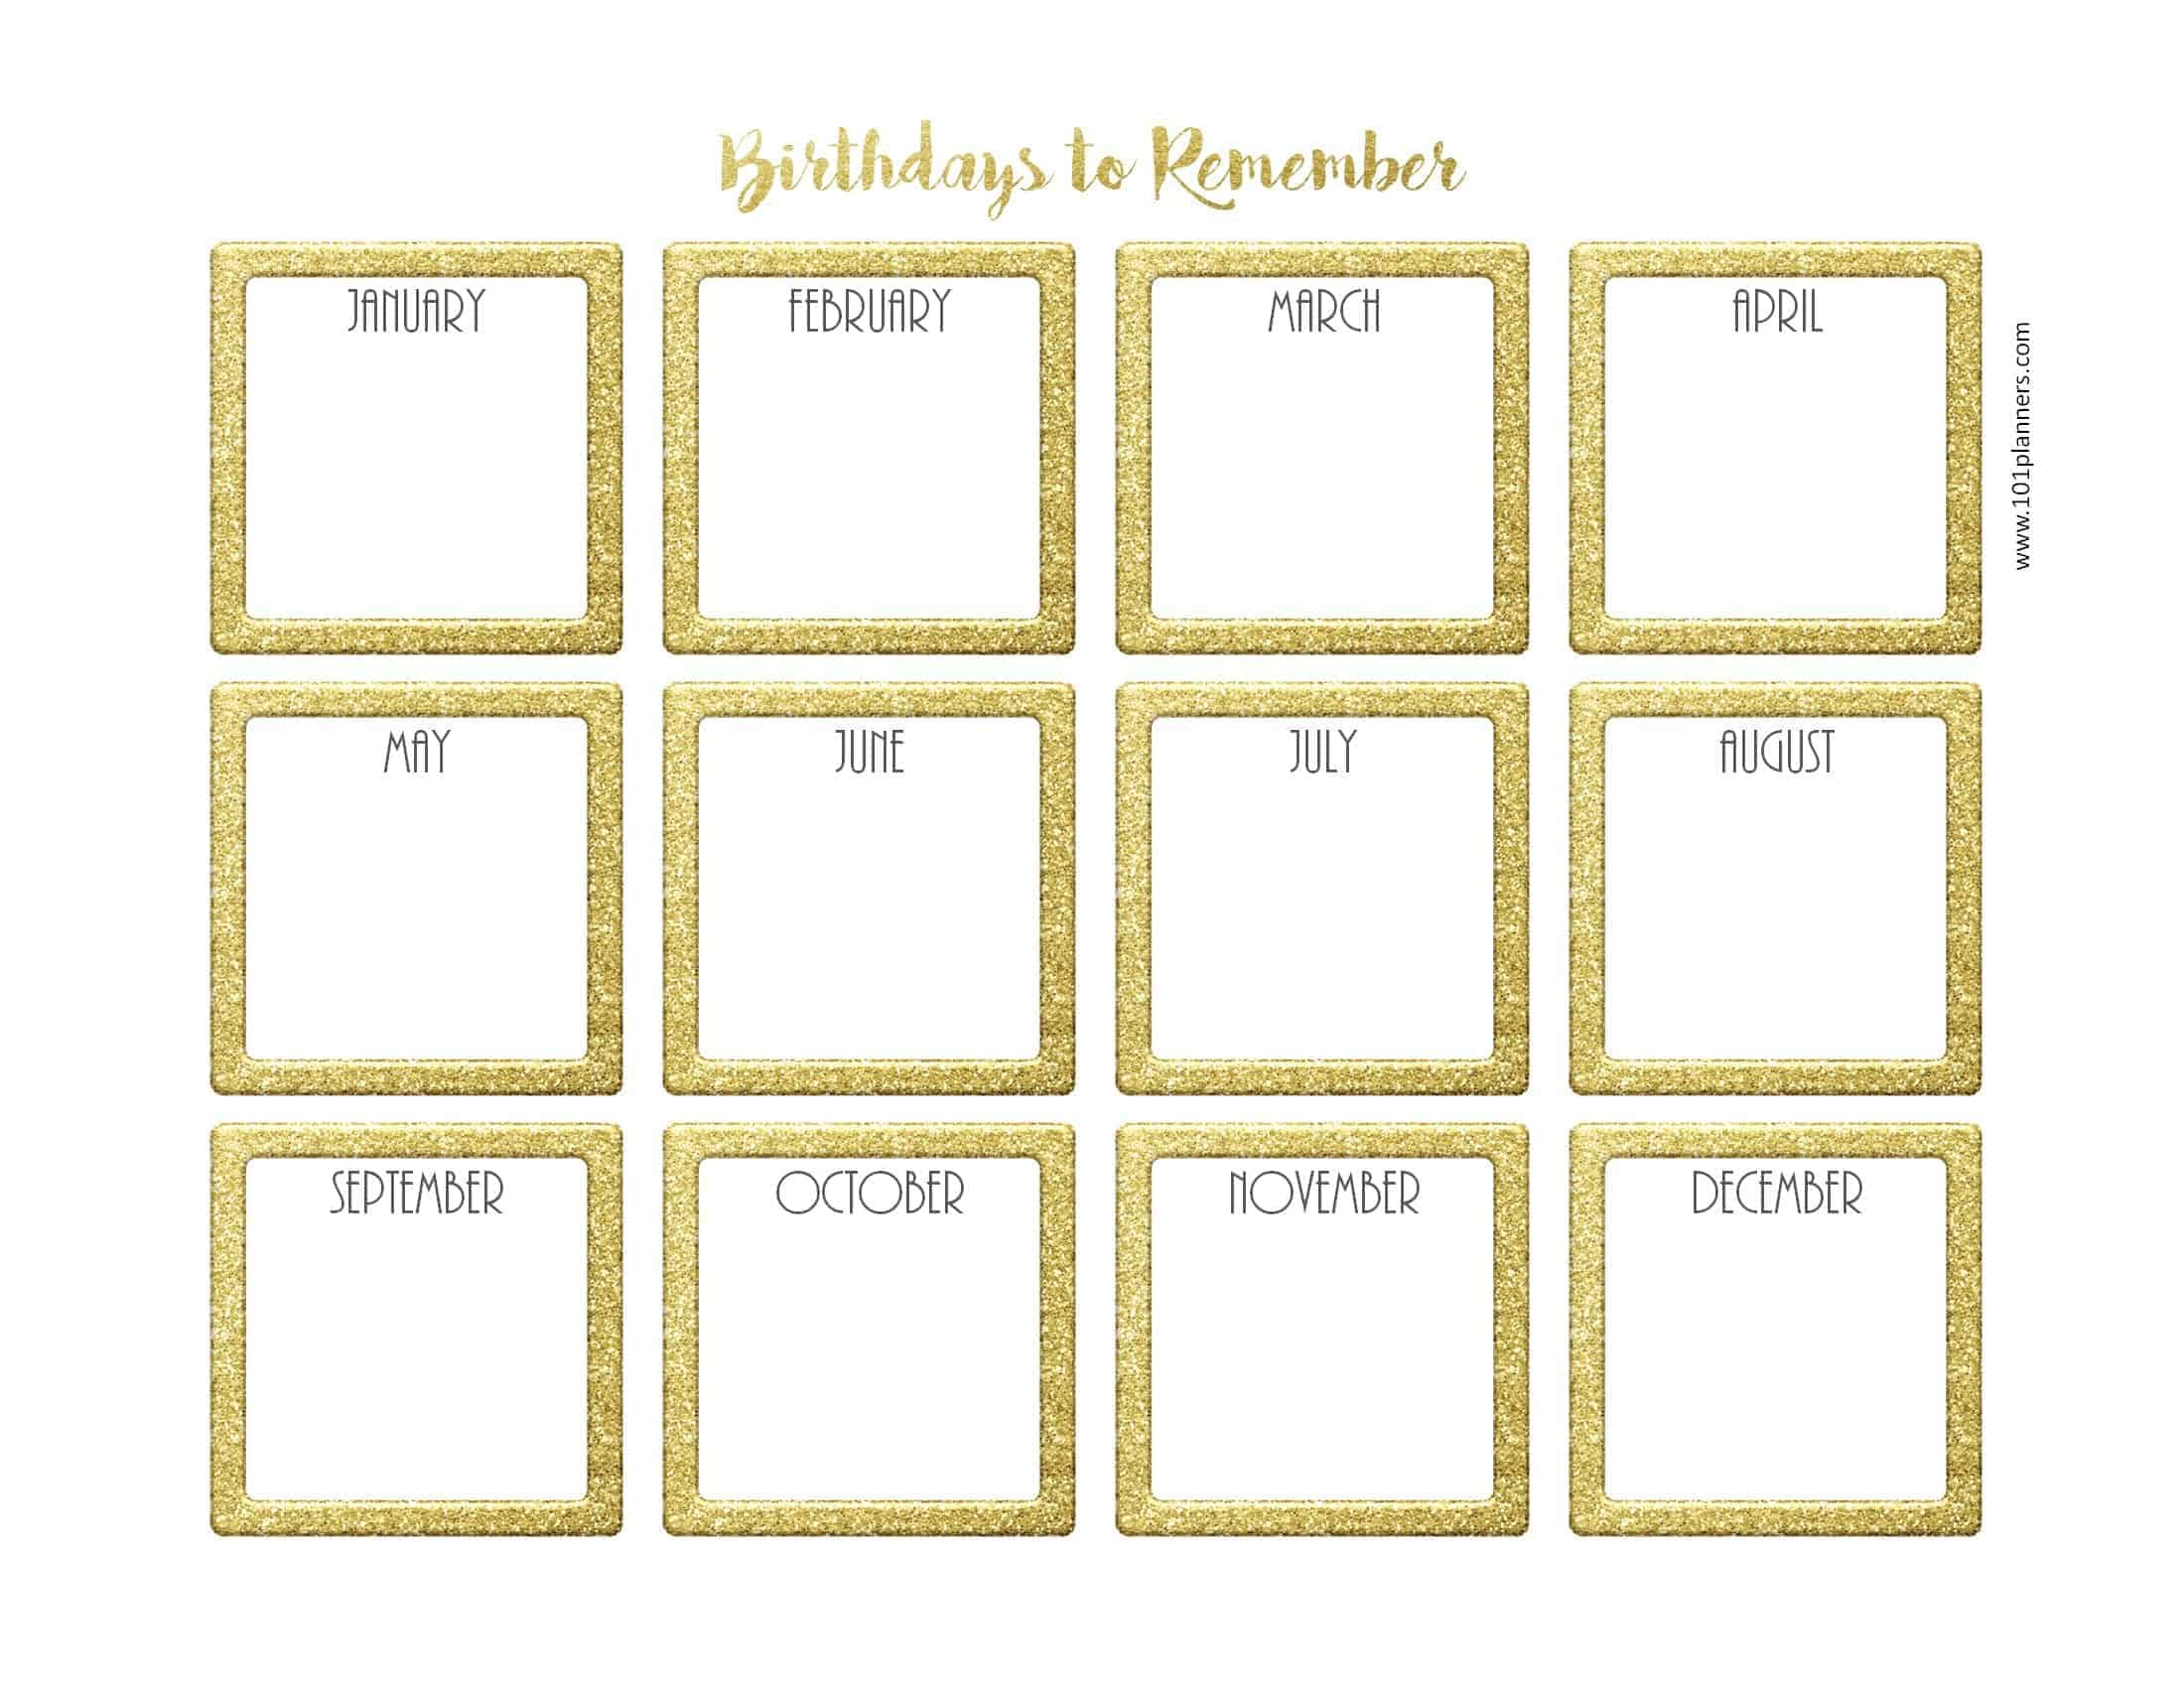 Art Calendar Template : Free birthday calendar customize online print at home